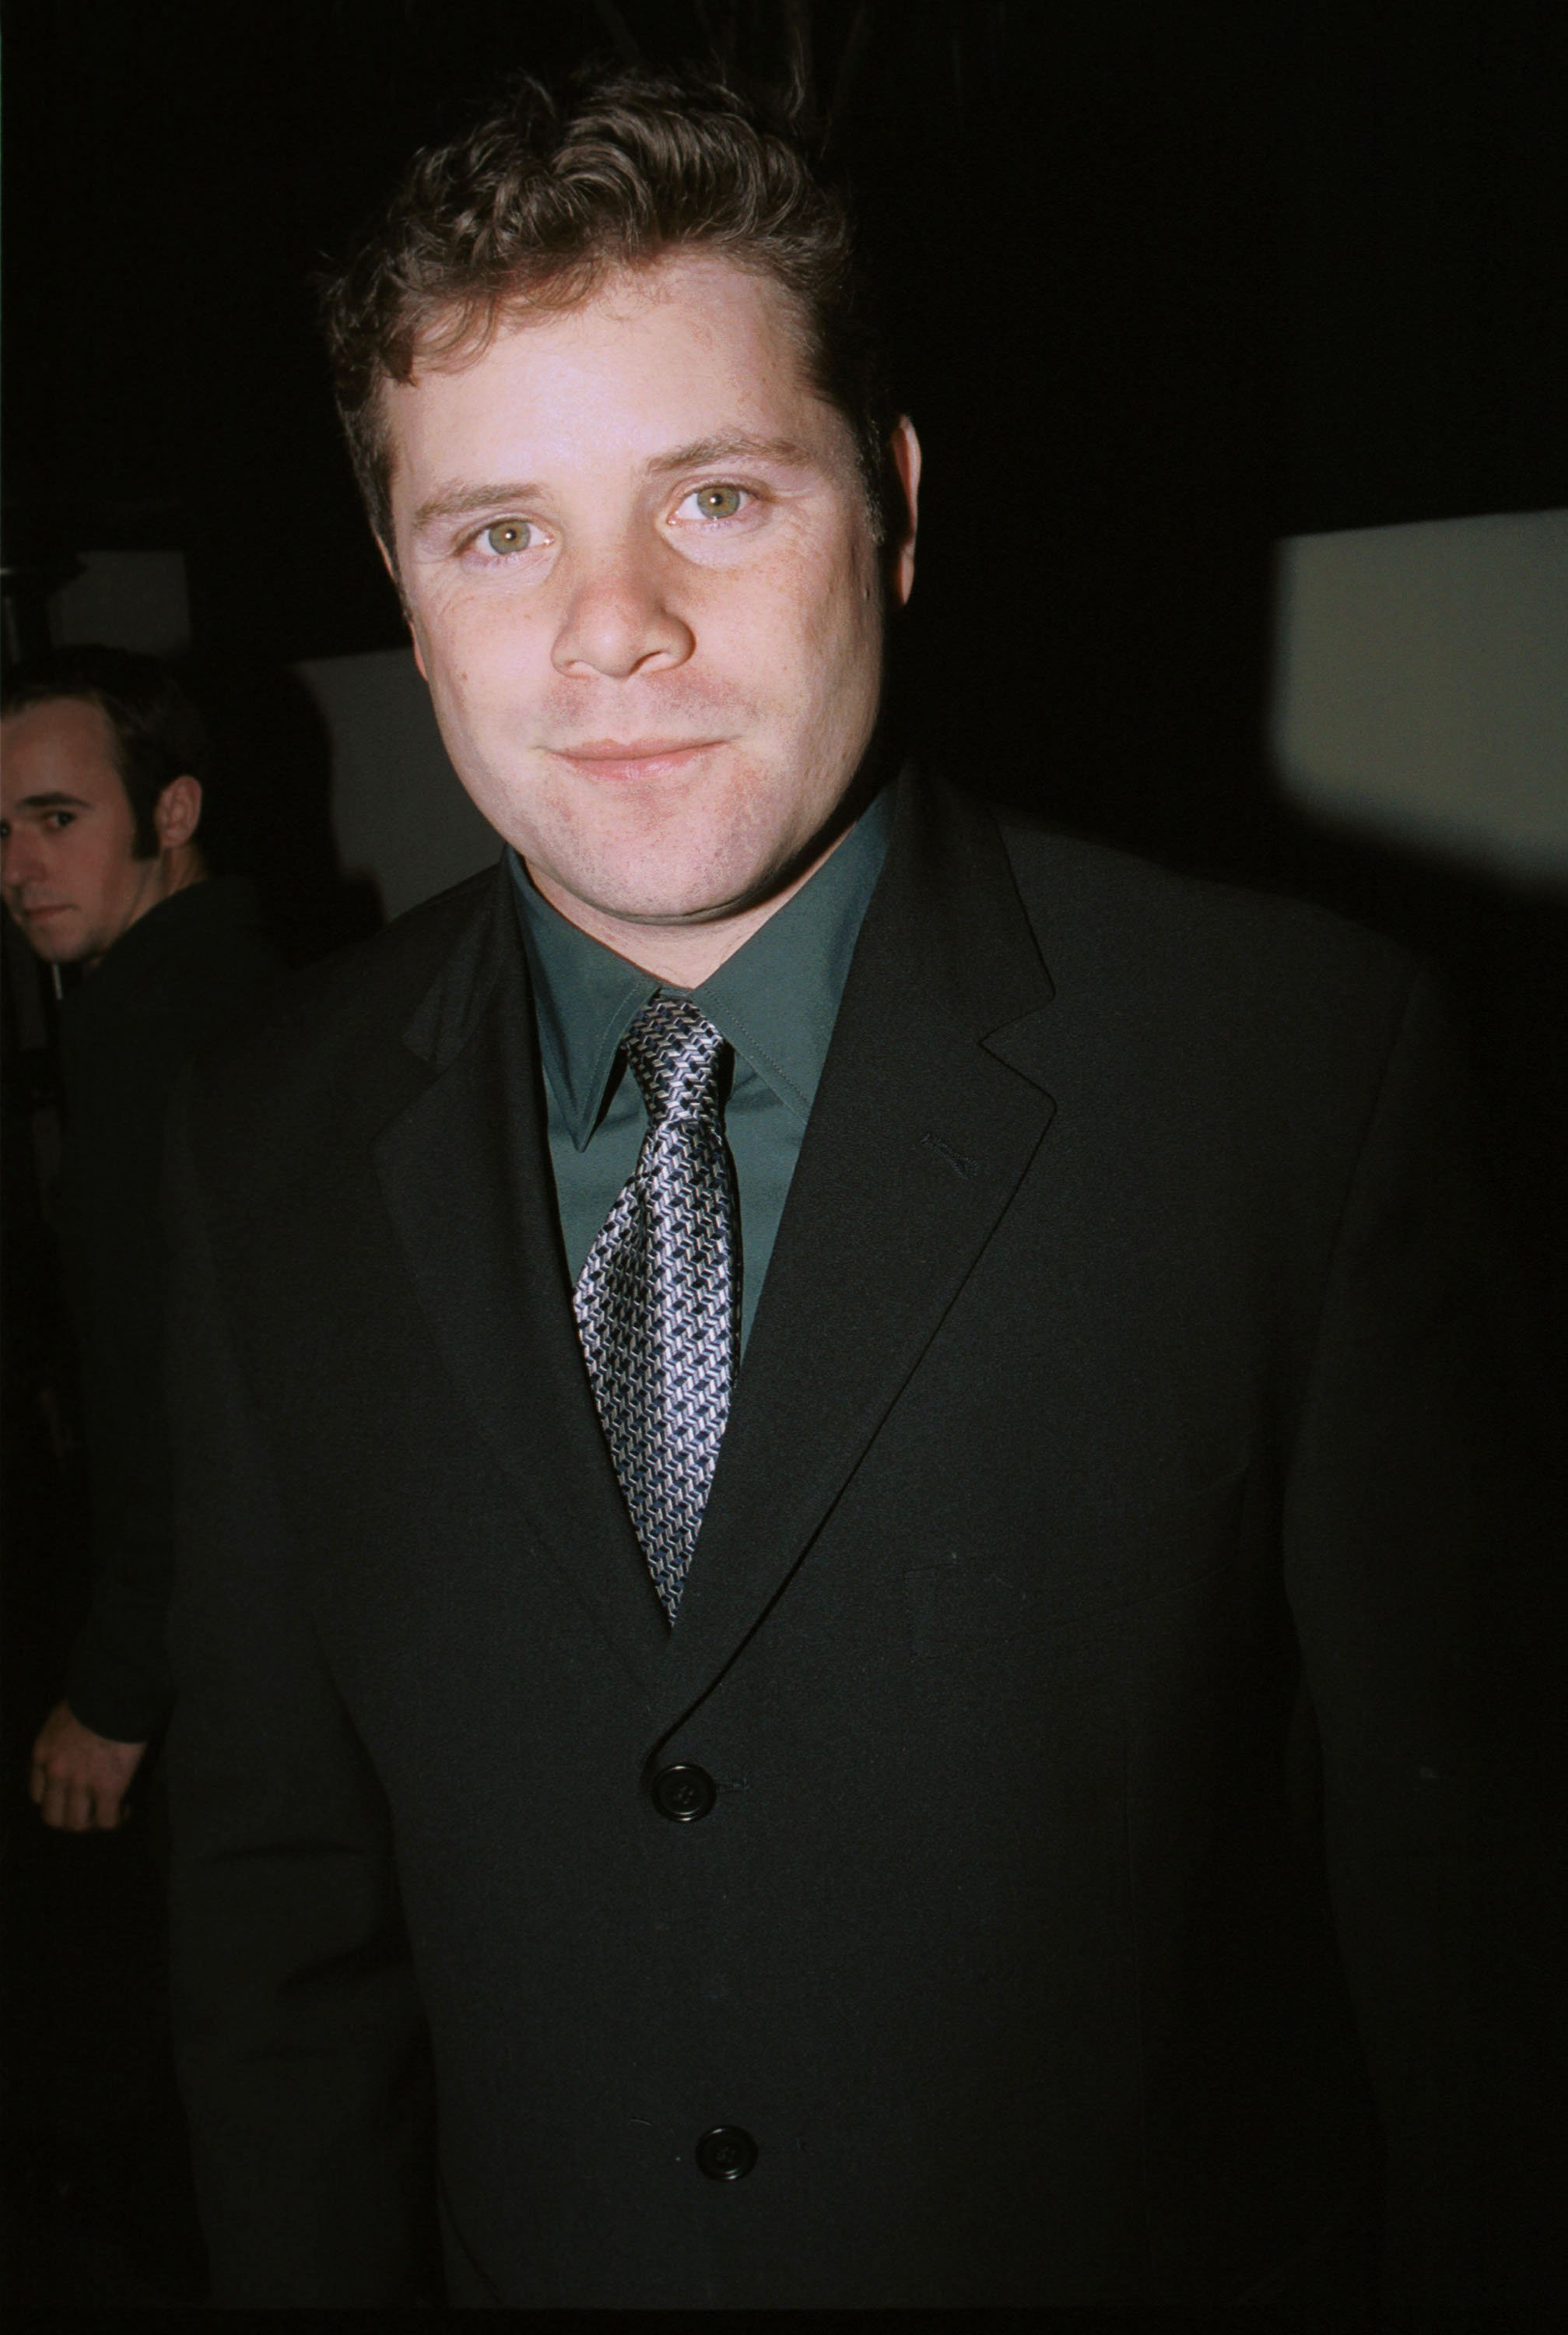 Sean Astin on December 16, 2001 in Hollywood, California | Source: Getty Images